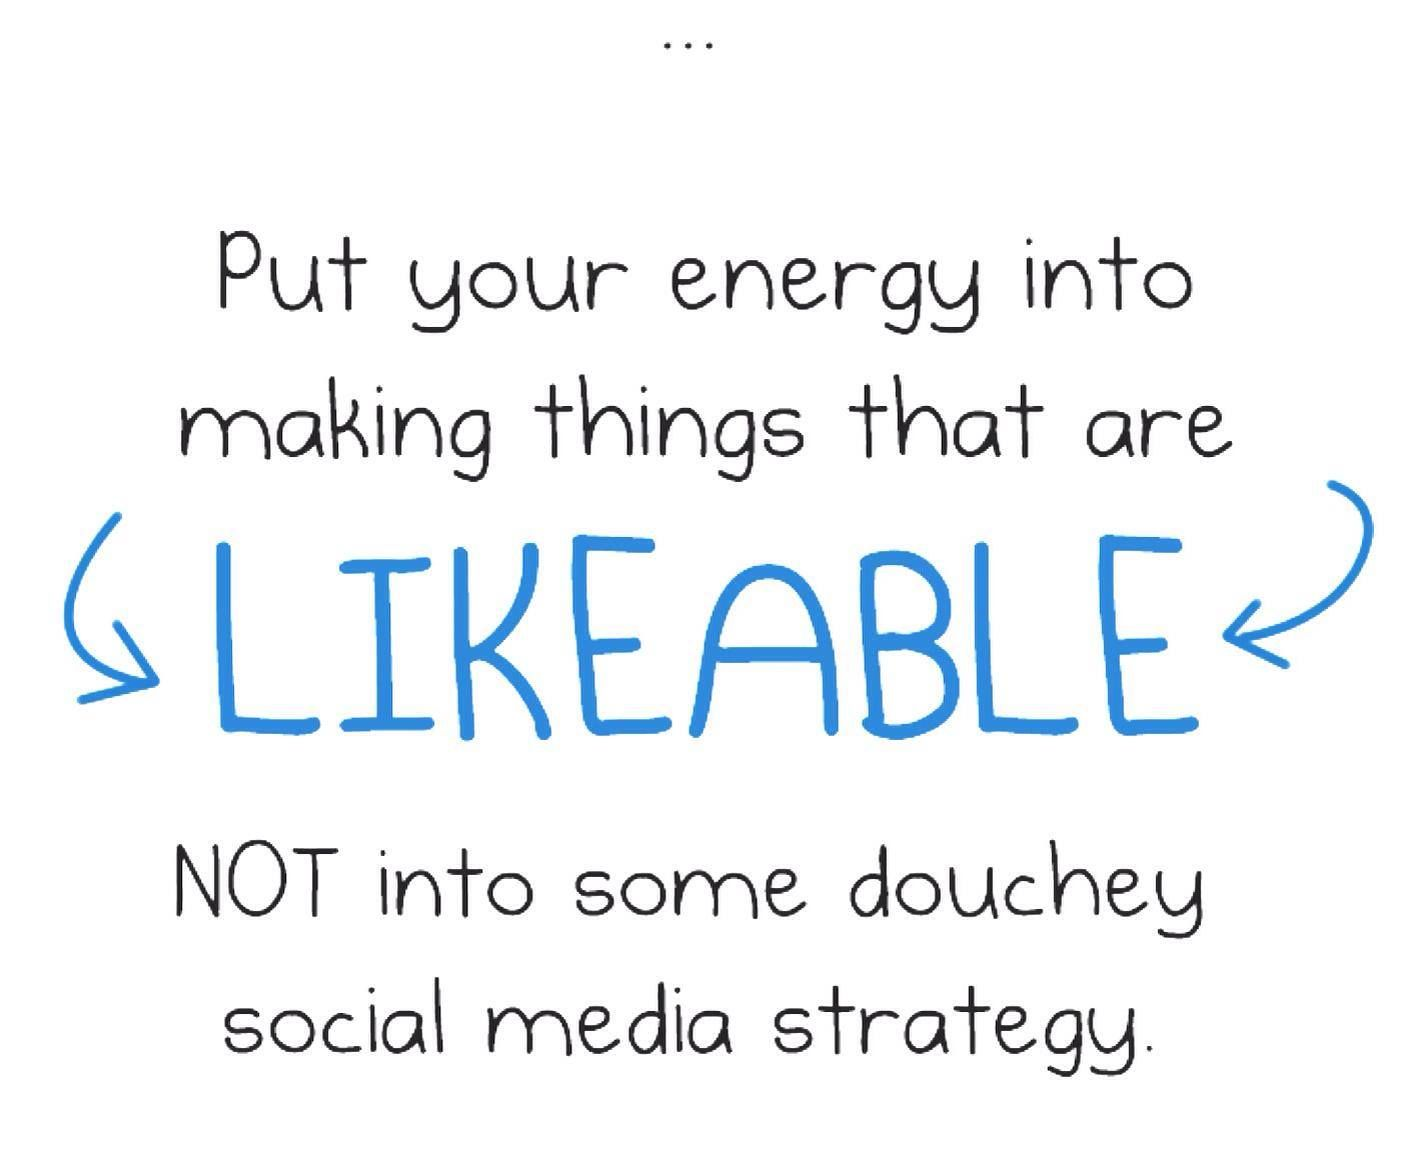 Make things that are likeable. Not a douchey social media strategy.